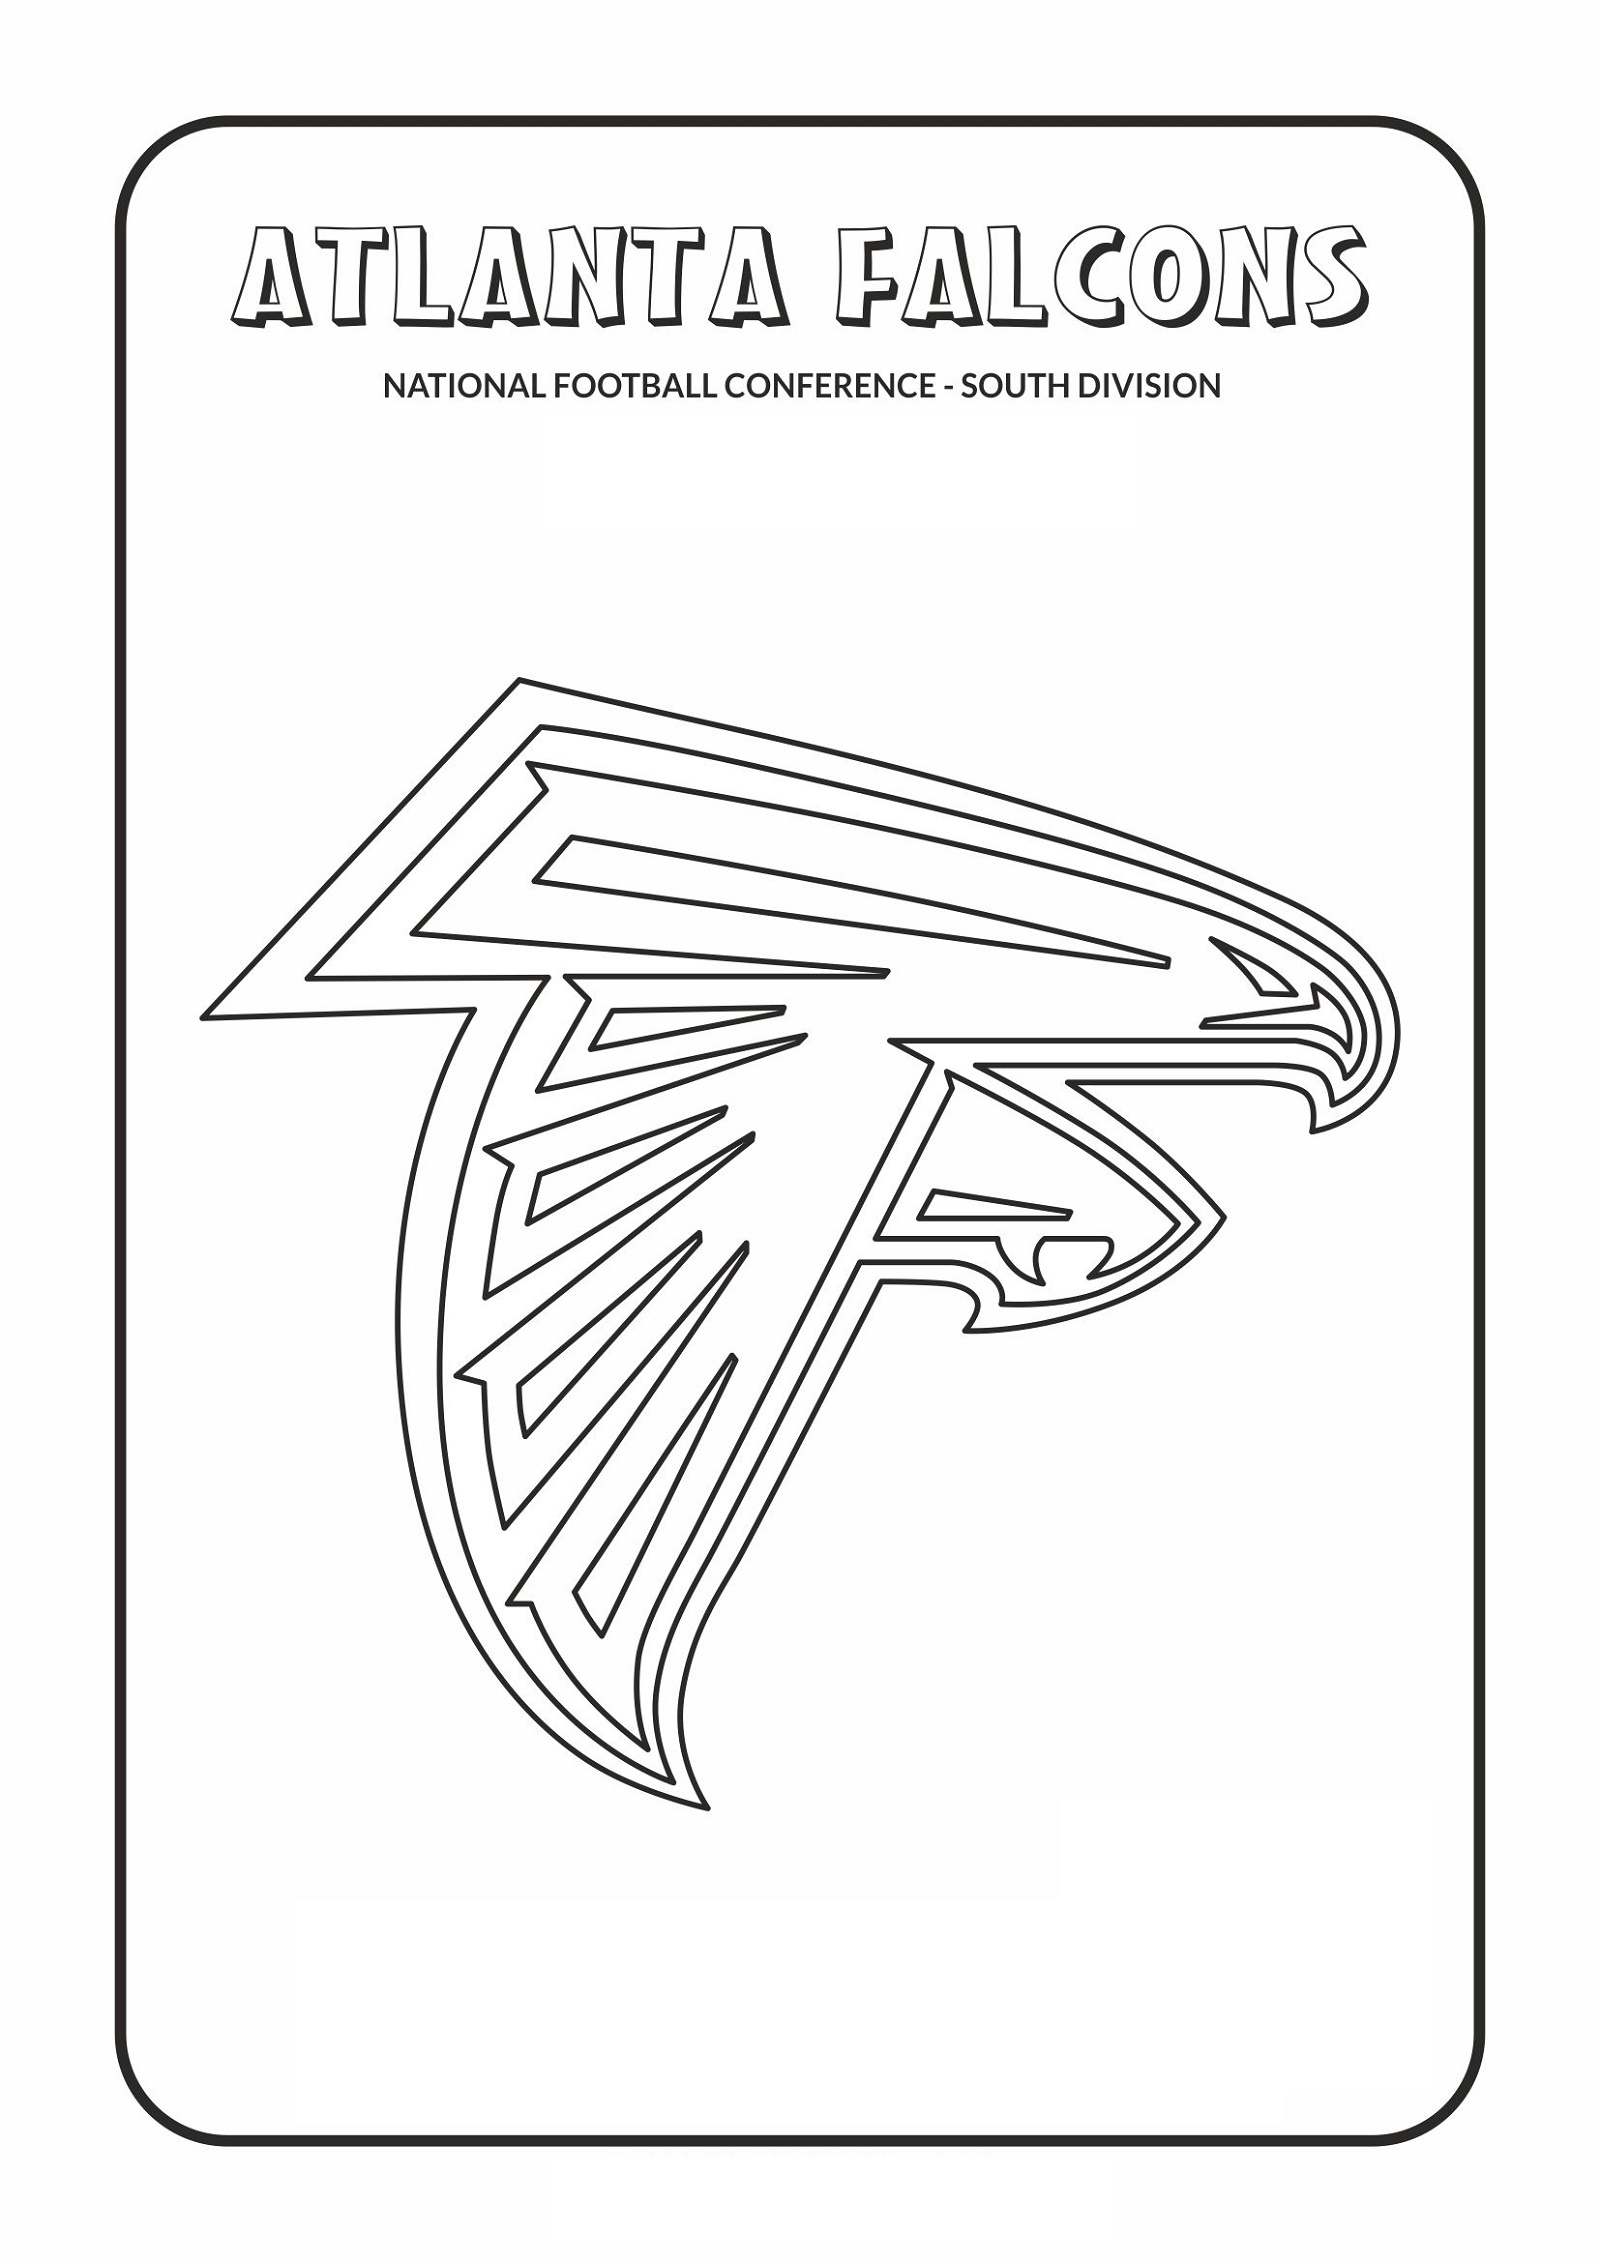 Atlanta Falcons Coloring Pages To Print